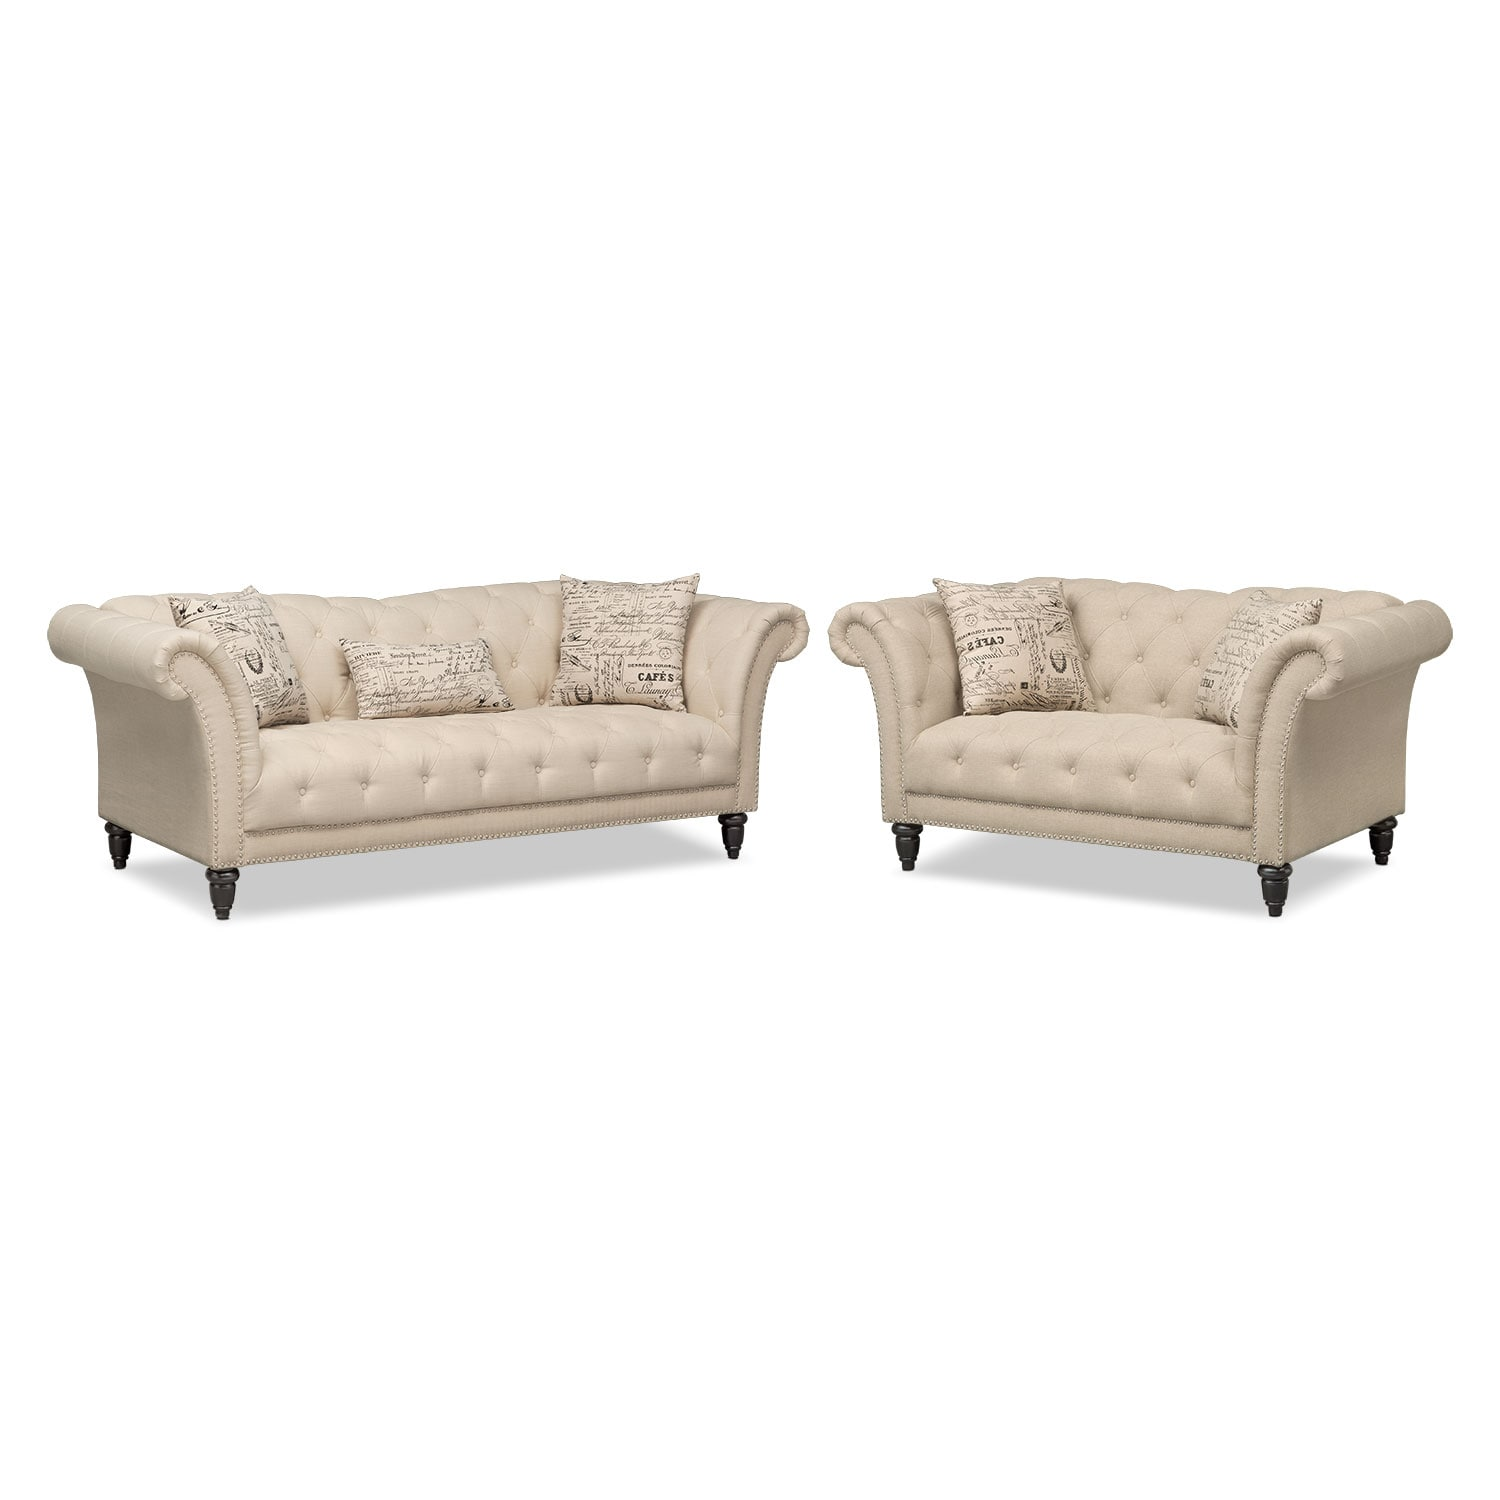 Marisol sofa beige value city furniture for Divan furniture